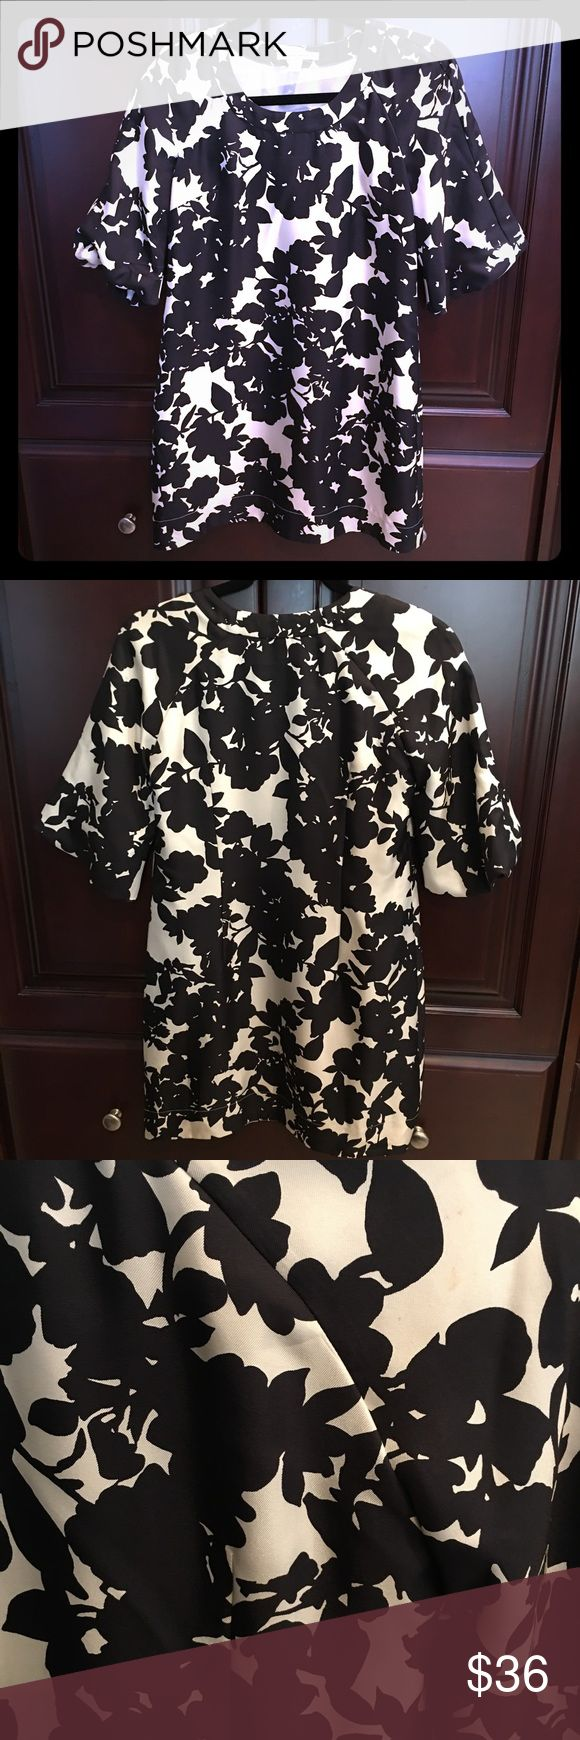 Banana Republic floral print silk dress Banana Republic short dress with slight bell sleeves and gorgeous all over black & white floral print. Lightweight. 100% silk. Fully lined. Dry clean only. Banana Republic Dresses